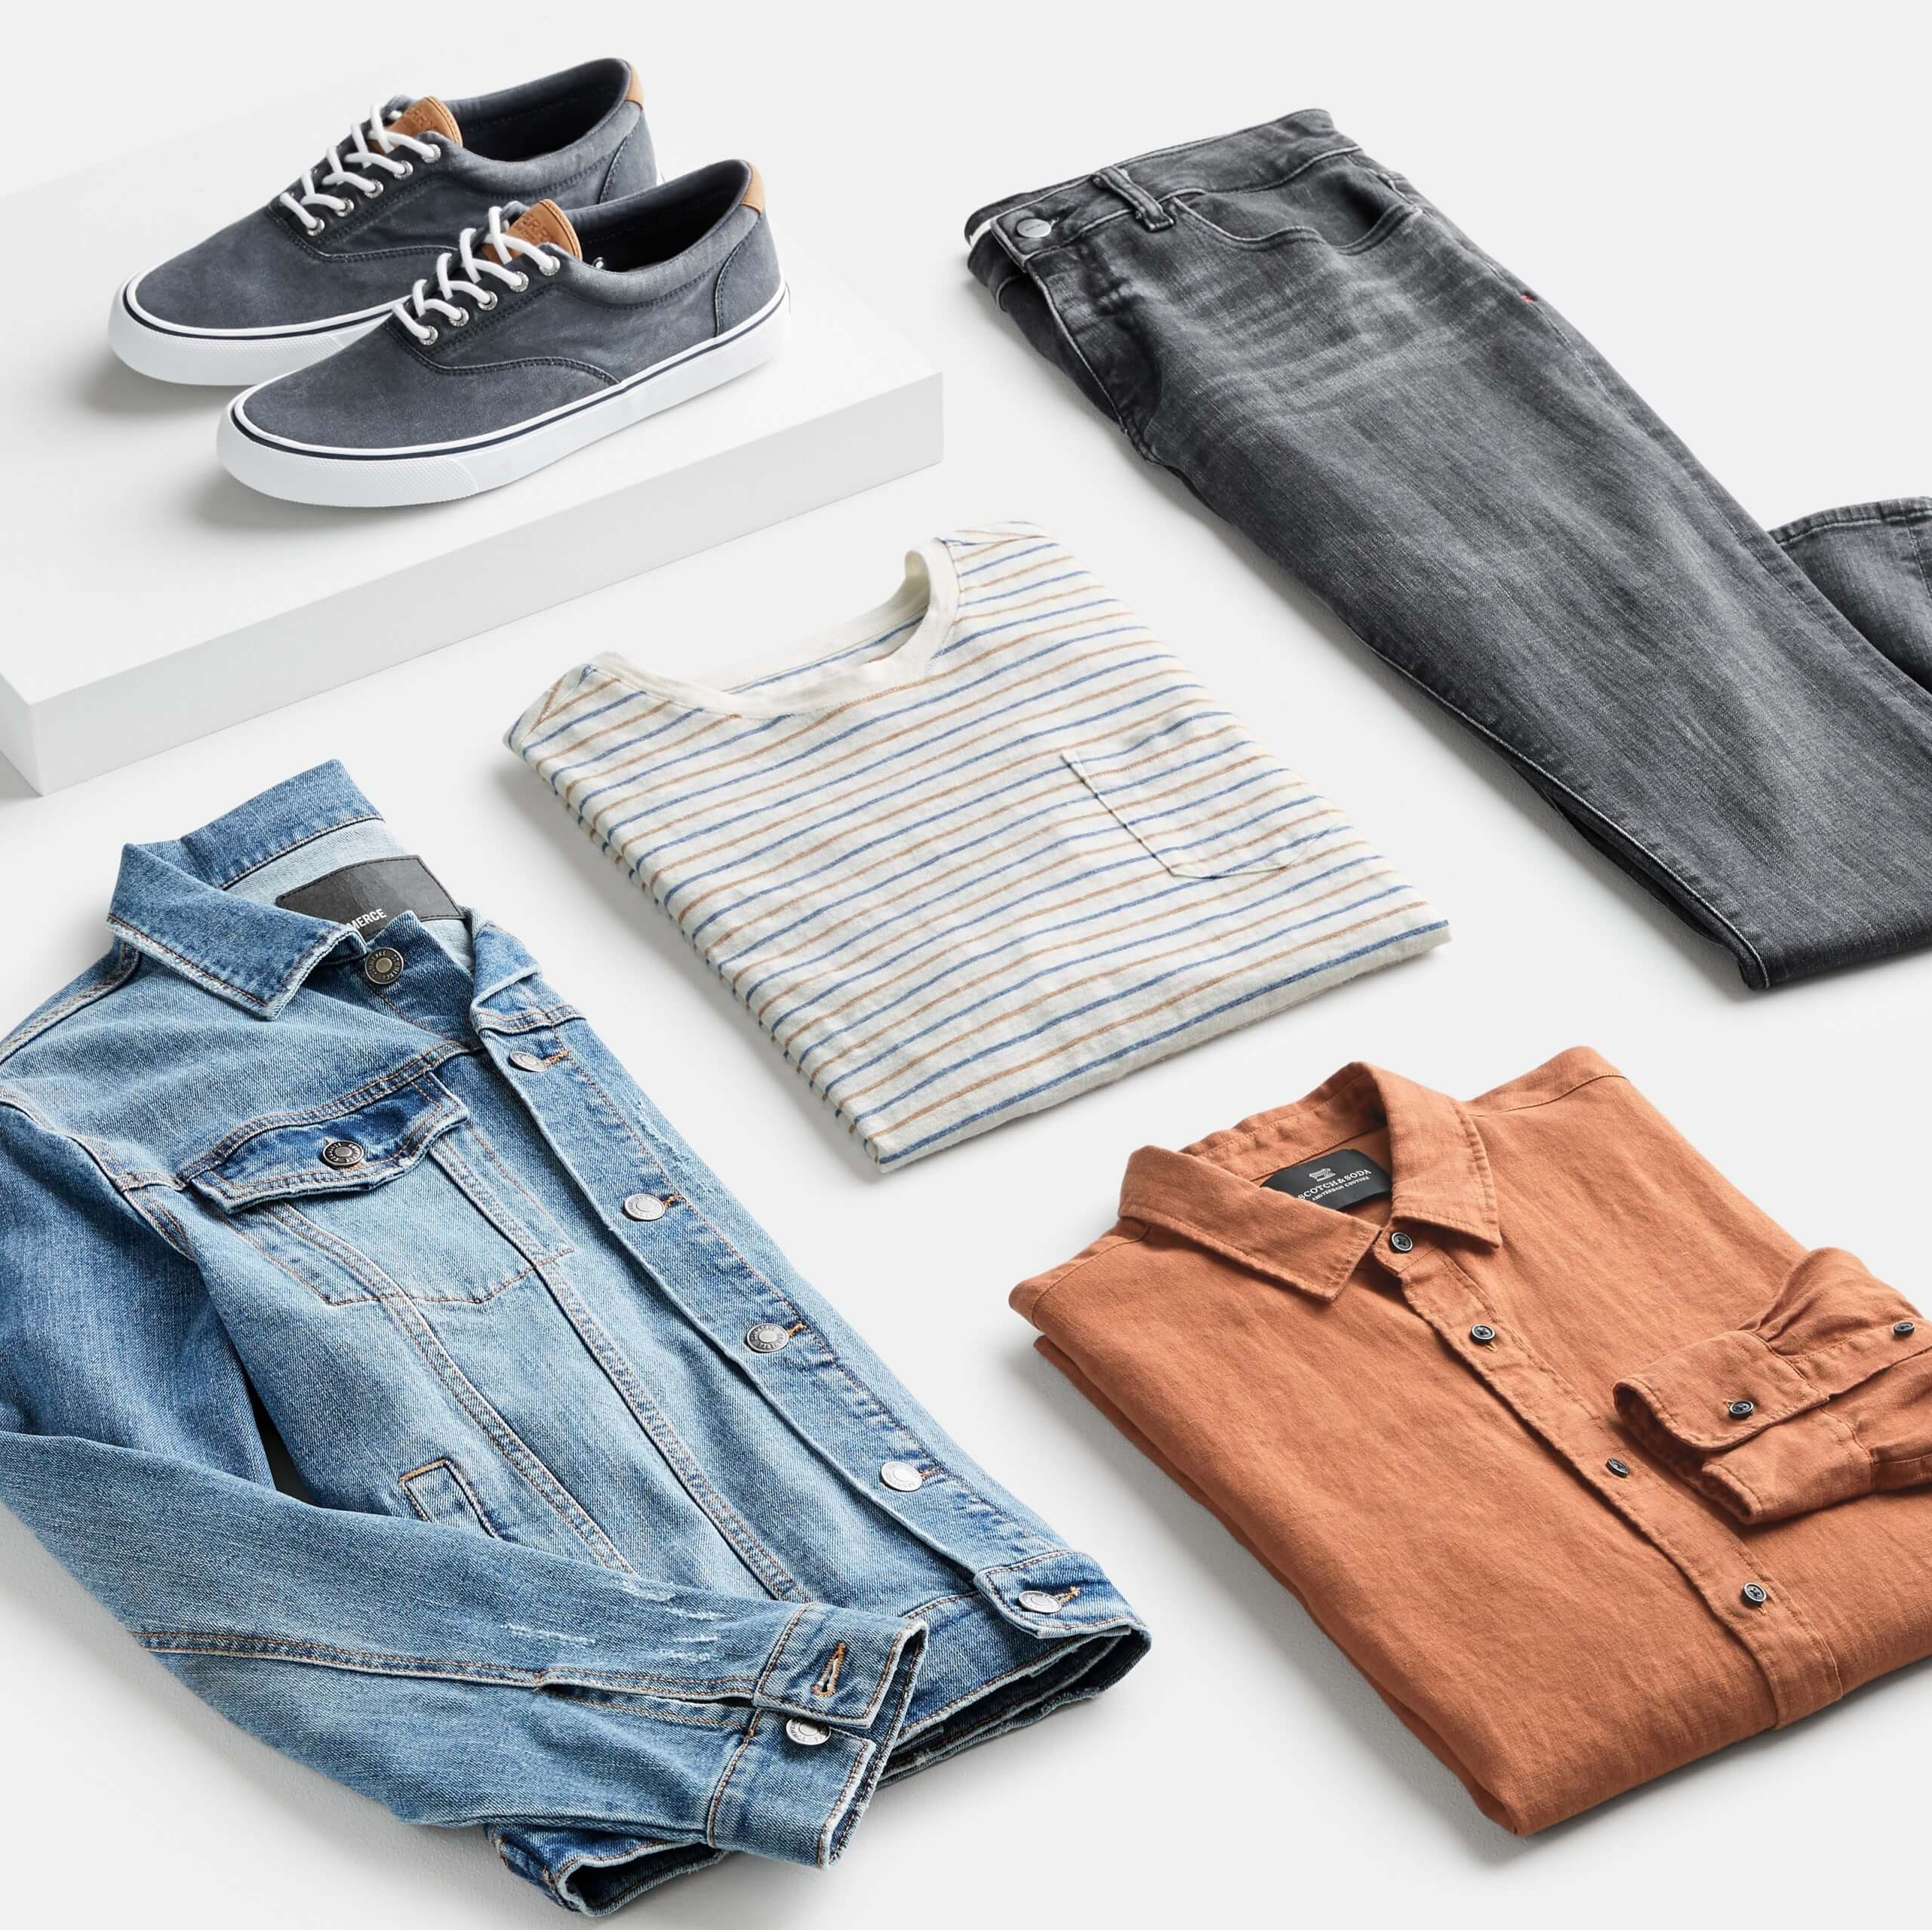 Stitch Fix Men's outfit laydown featuring grey lace-up sneakers on a white block, next to a denim jacket, grey, blue and orange striped crew neck t-shirt, orange button-down shirt and grey jeans.